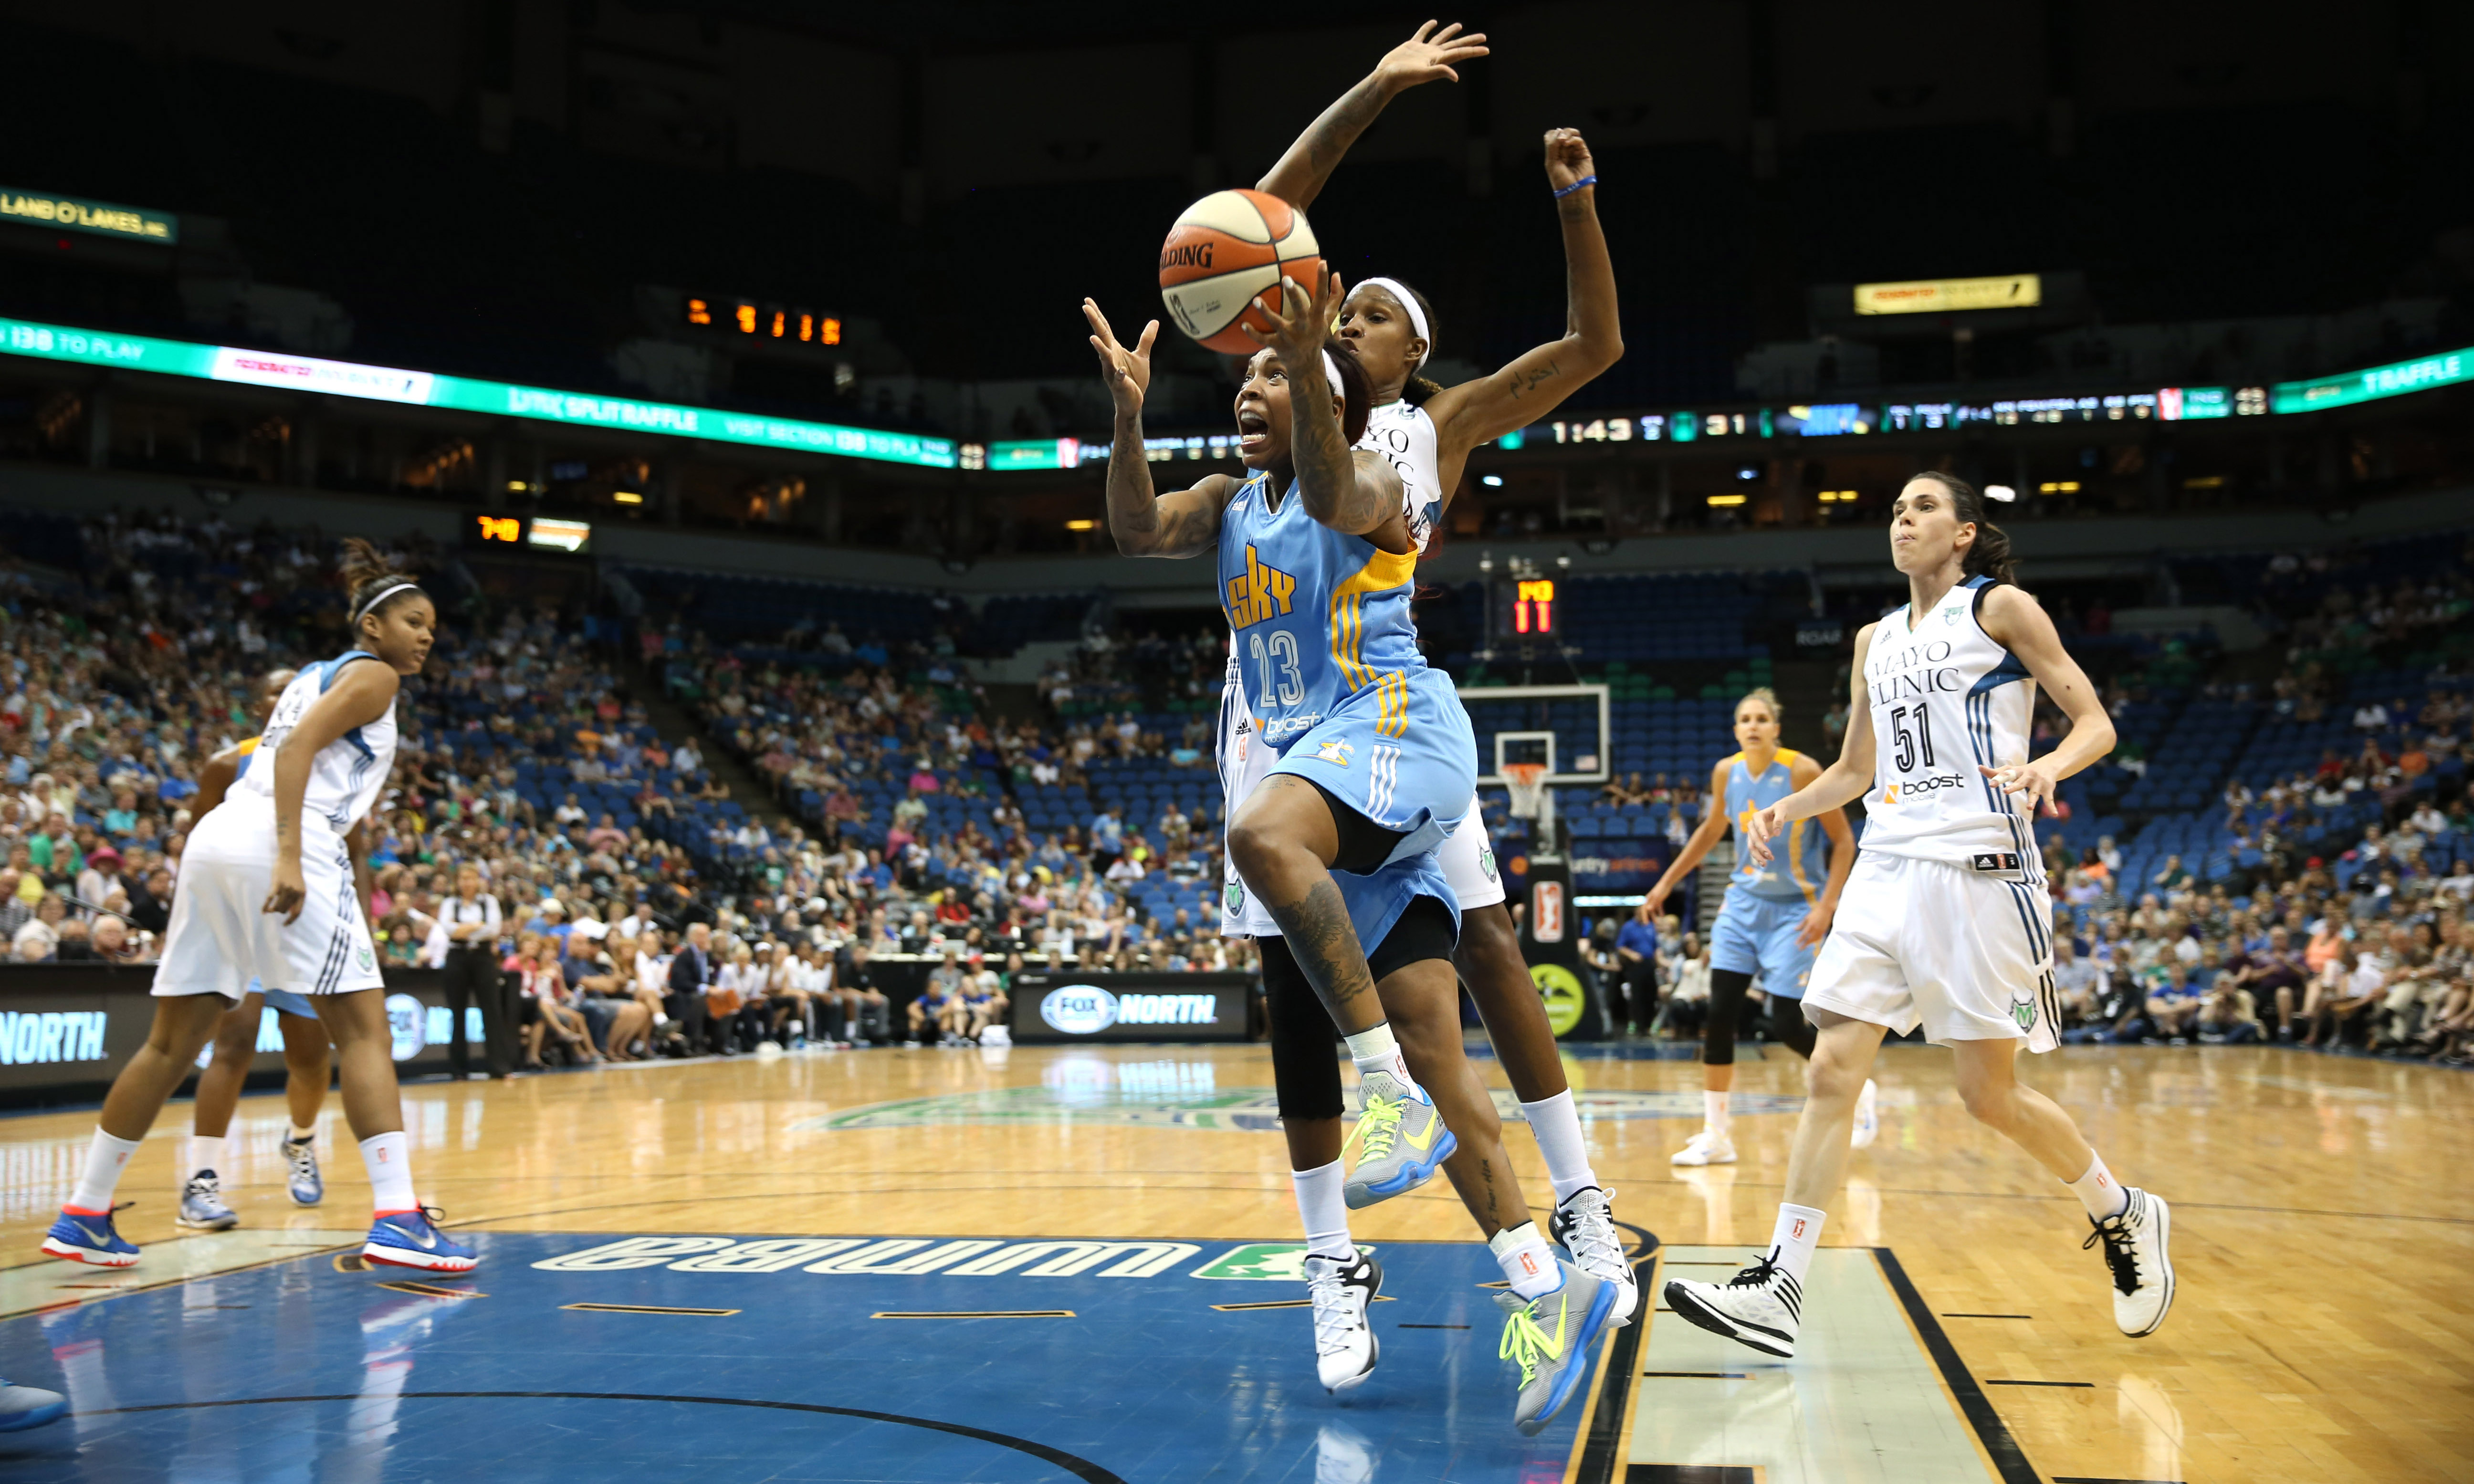 Sky guard Cappie Pondexter entered last night's game as the fifth-leading scorer in the league, but was held in check by Lynx guard Anna Cruz. Pondexter finished with just four points on 2-of-7 shooting and three turnovers.